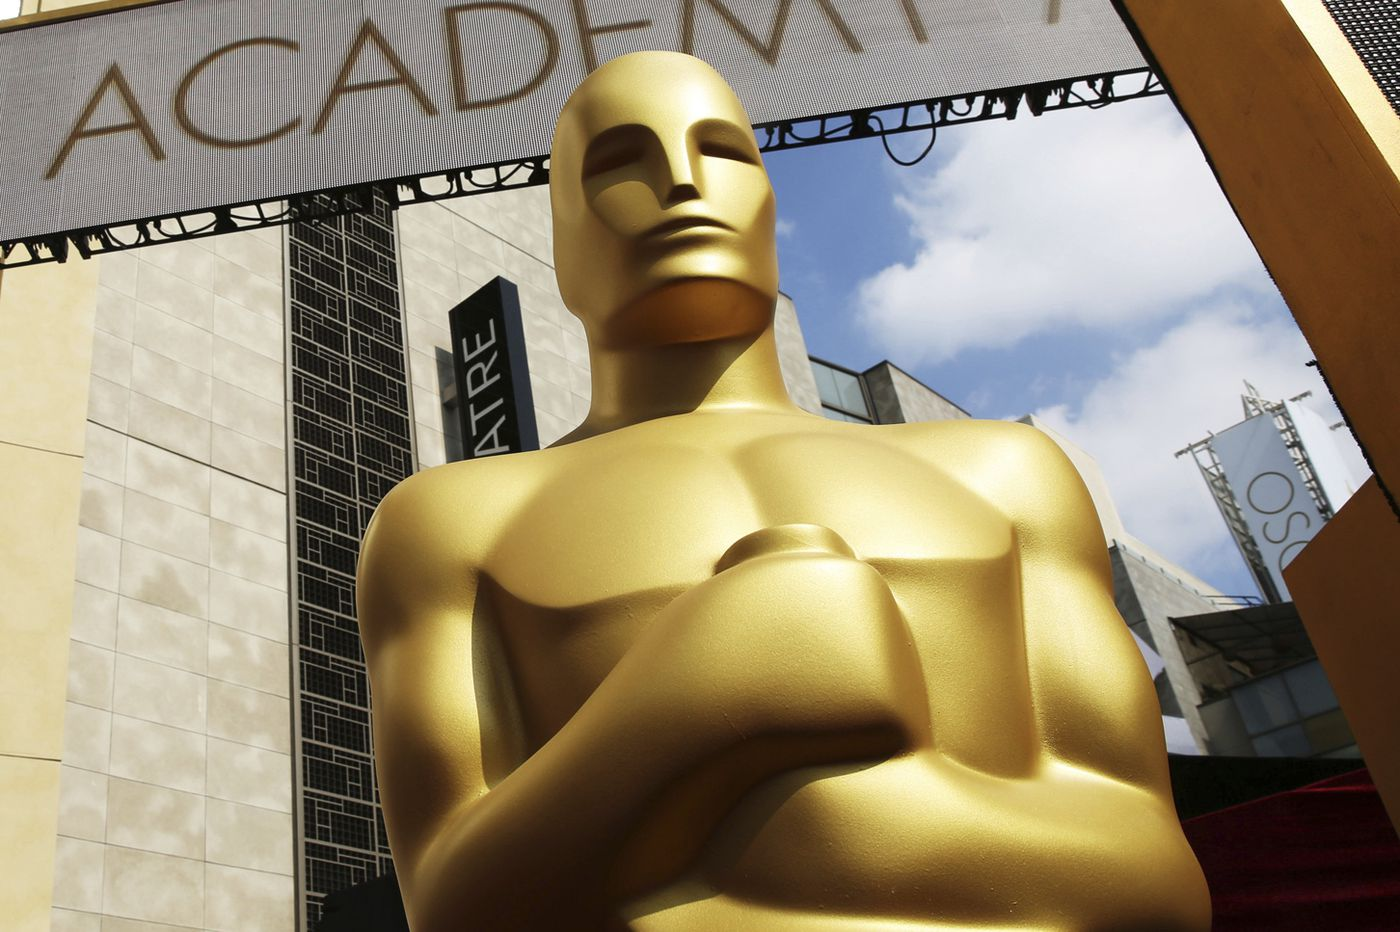 e84f16bcf4b Oscars odds  Betting on the Academy Awards is now legal in New Jersey